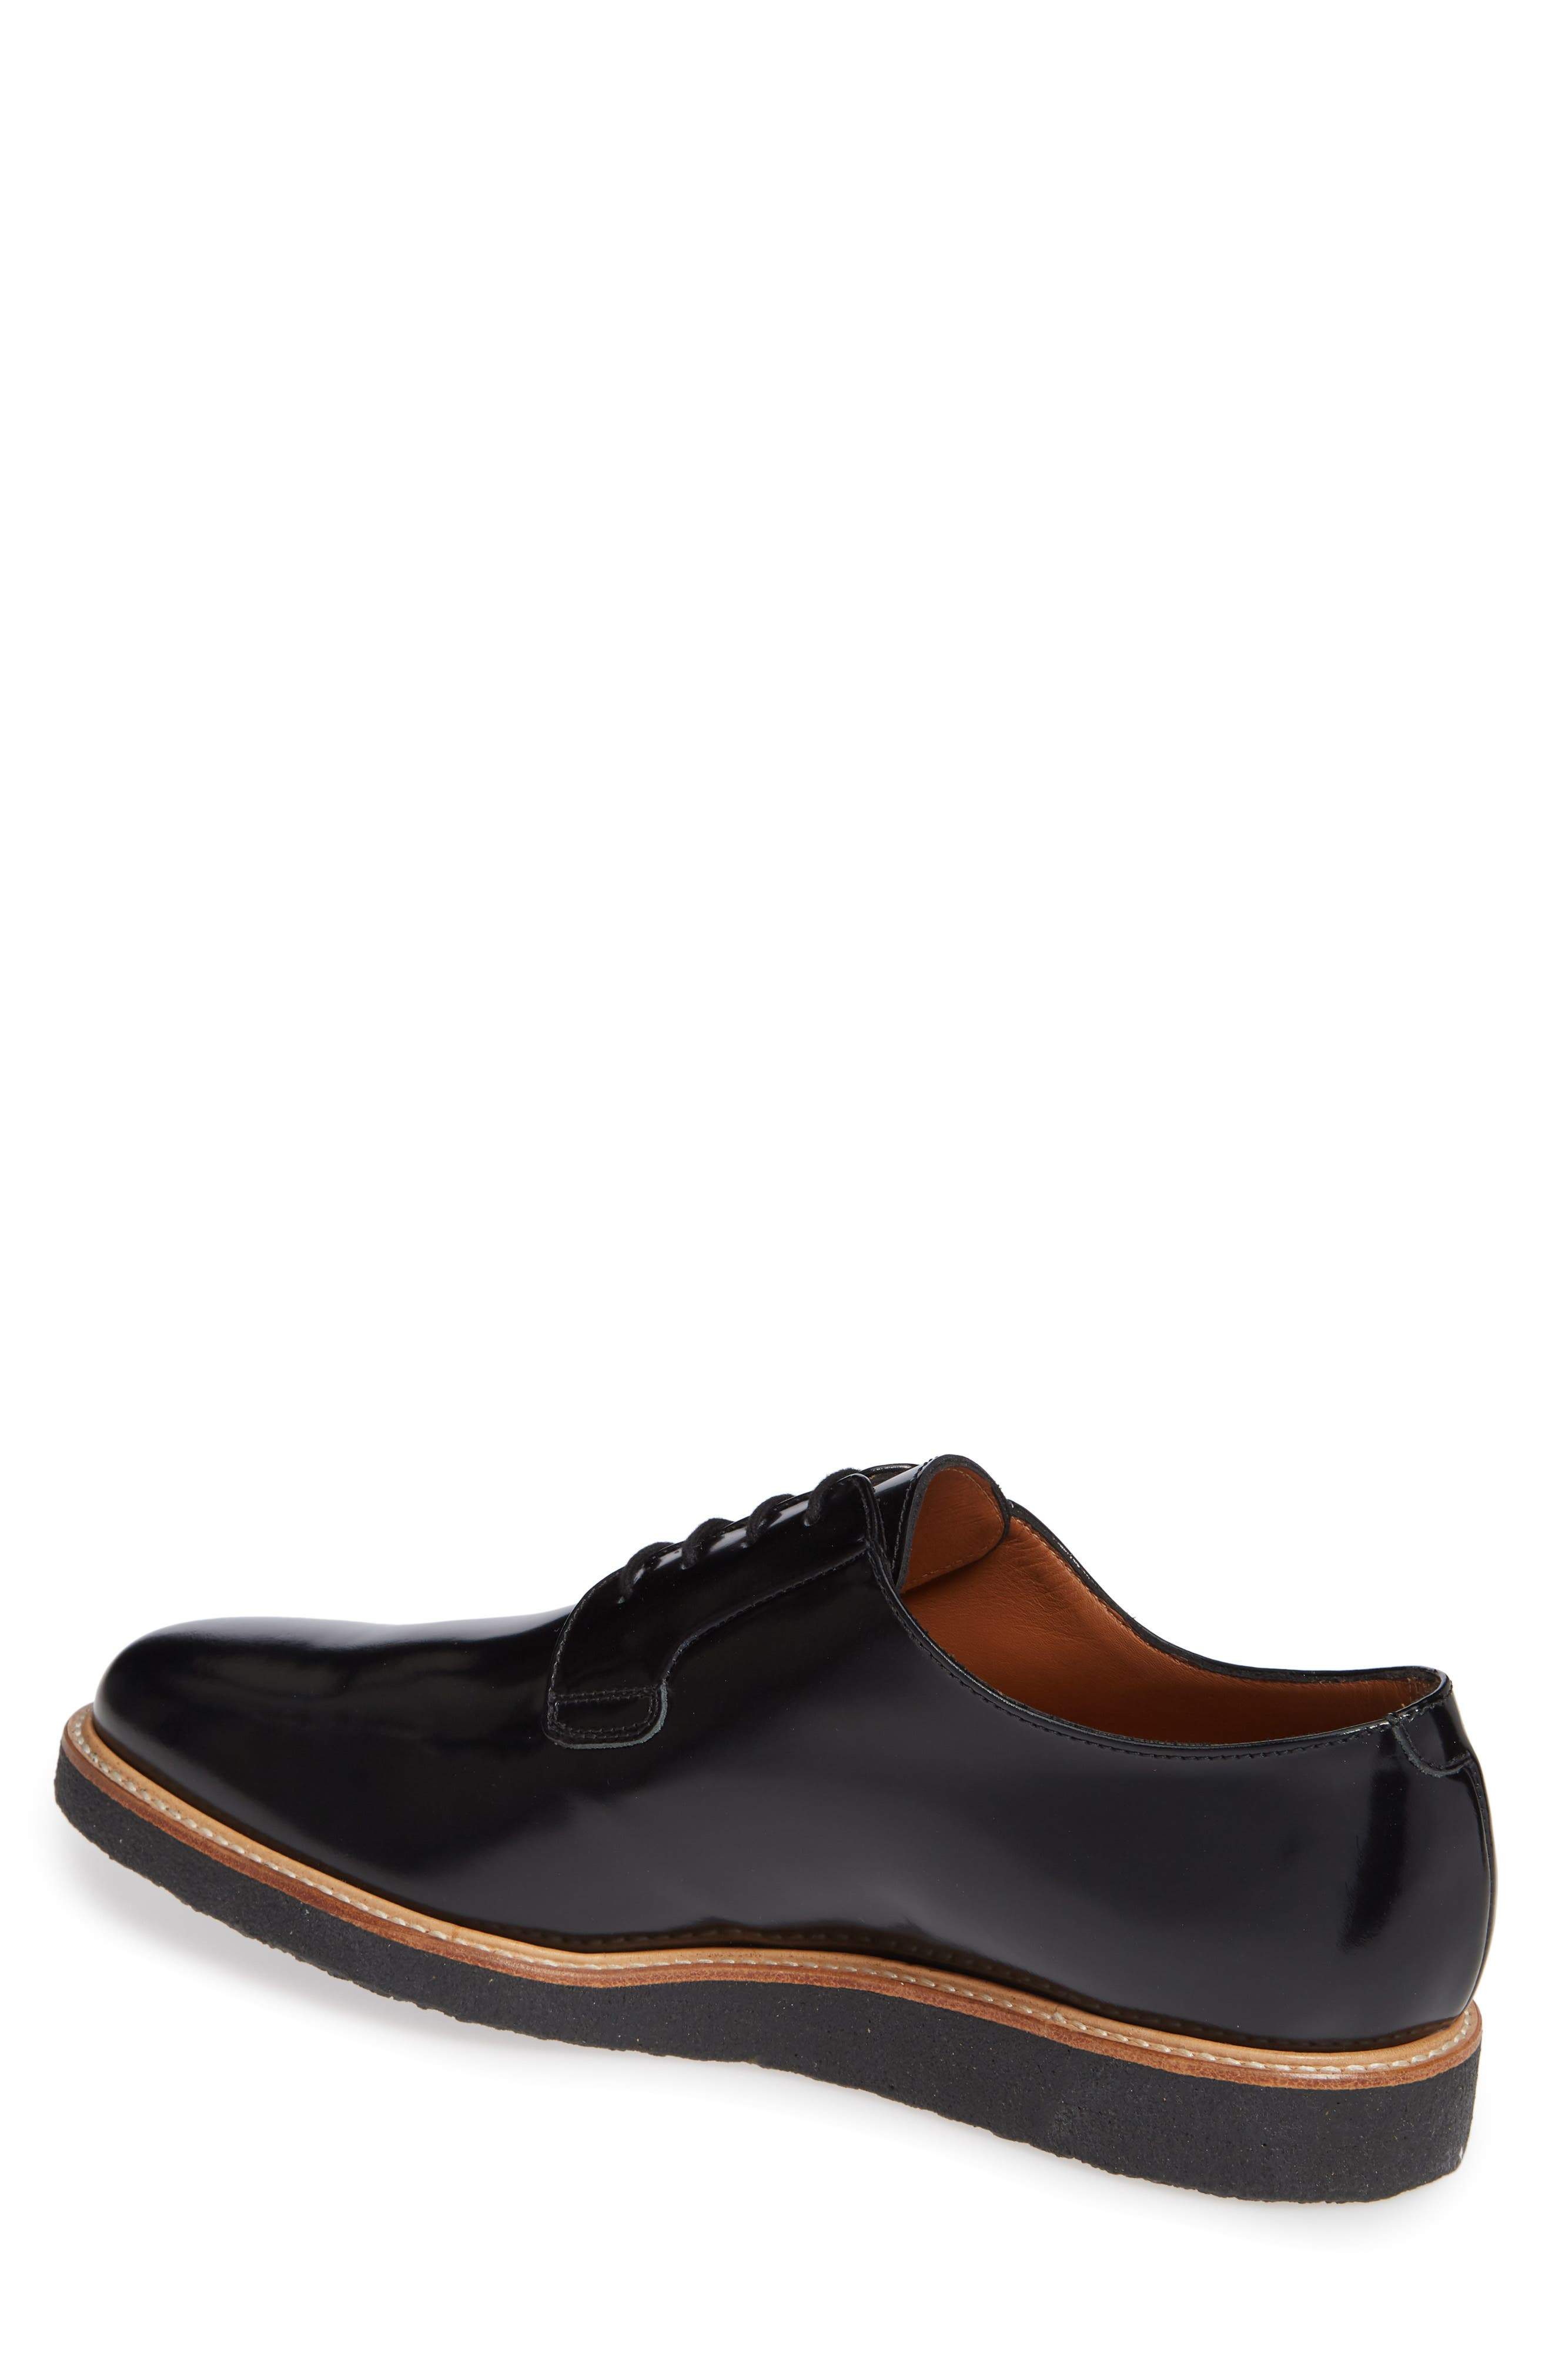 COMMON PROJECTS, Plain Toe Derby, Alternate thumbnail 2, color, BLACK SHINE